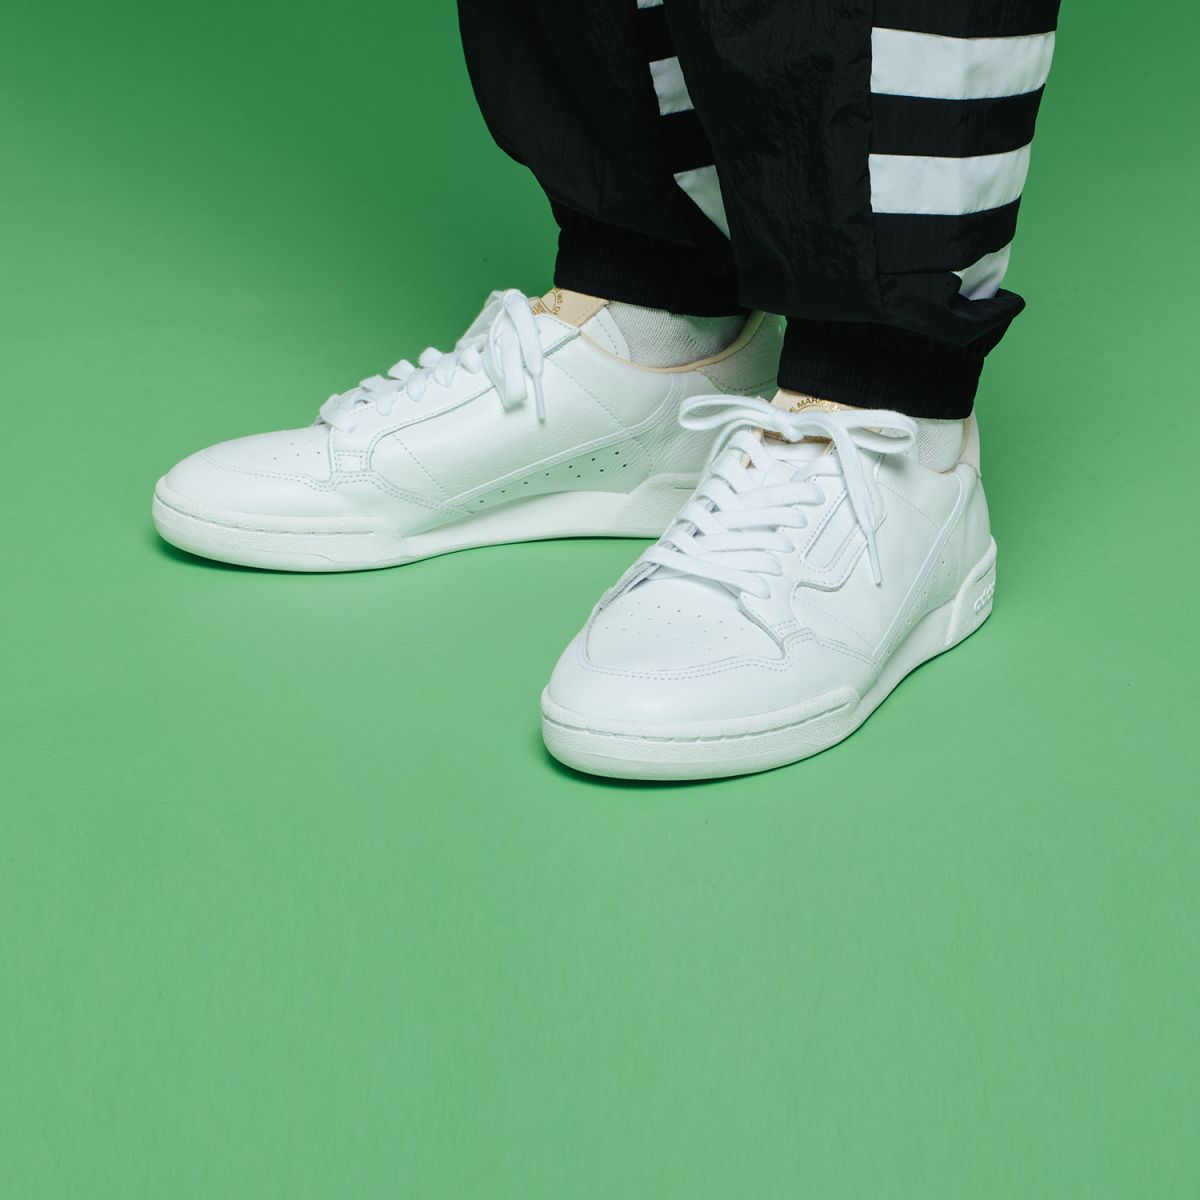 All articles! 0219 11:00 0225 09:59 Adidas adidas Continental 80 CONTINENTAL 80 men's originals shoes sneakers EF2101 point_adidasday